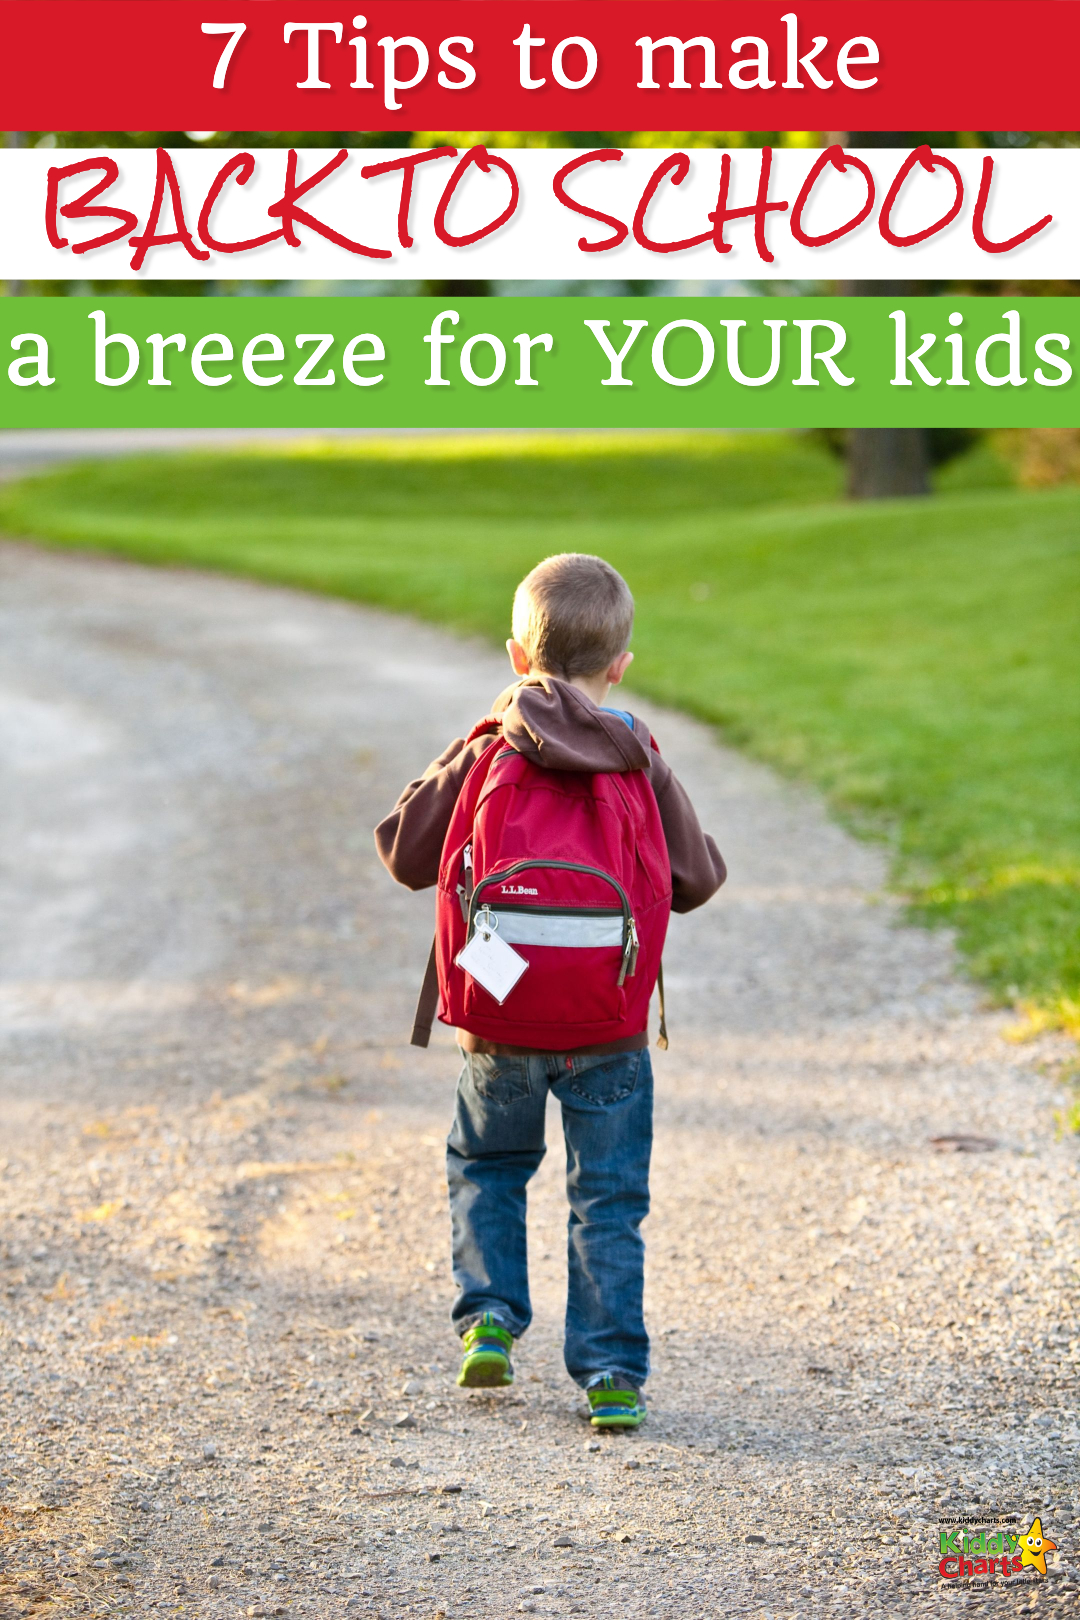 We've got some great back to school tips for you and the kids to make it so much easier for everyone. #backtoschool #kids #school #learning #education #parenting